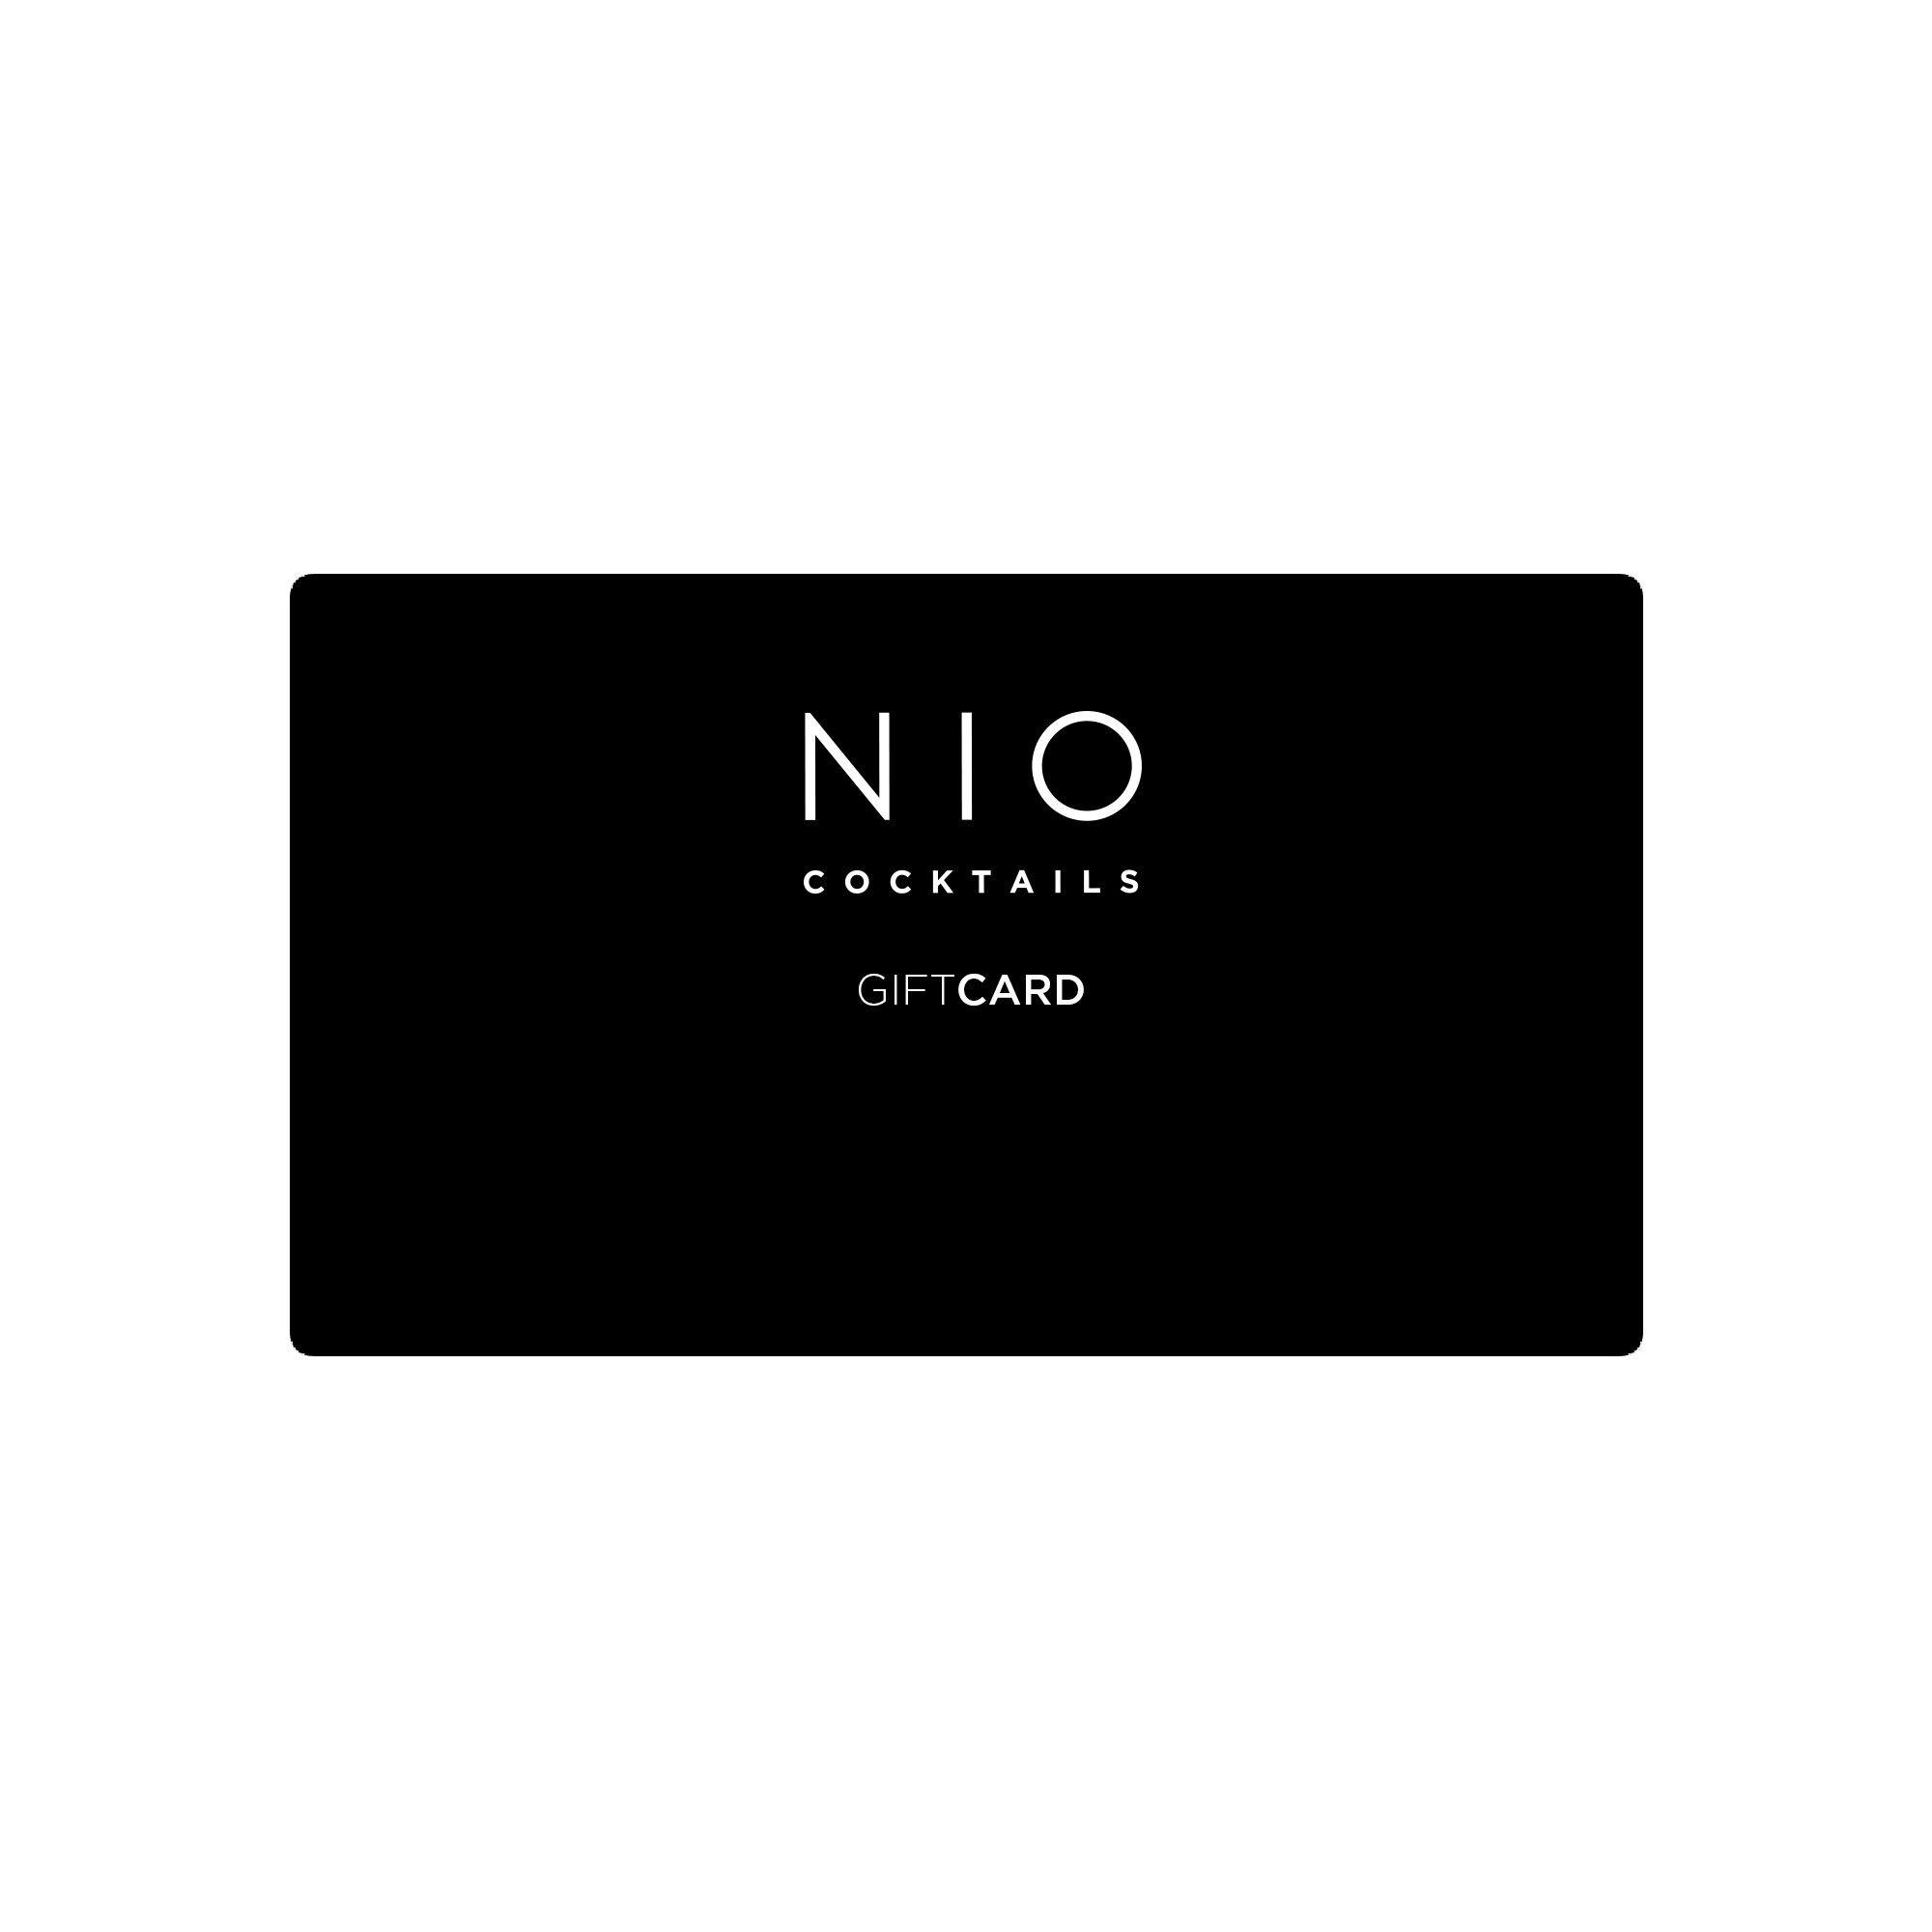 nio_cocktails_gift_card